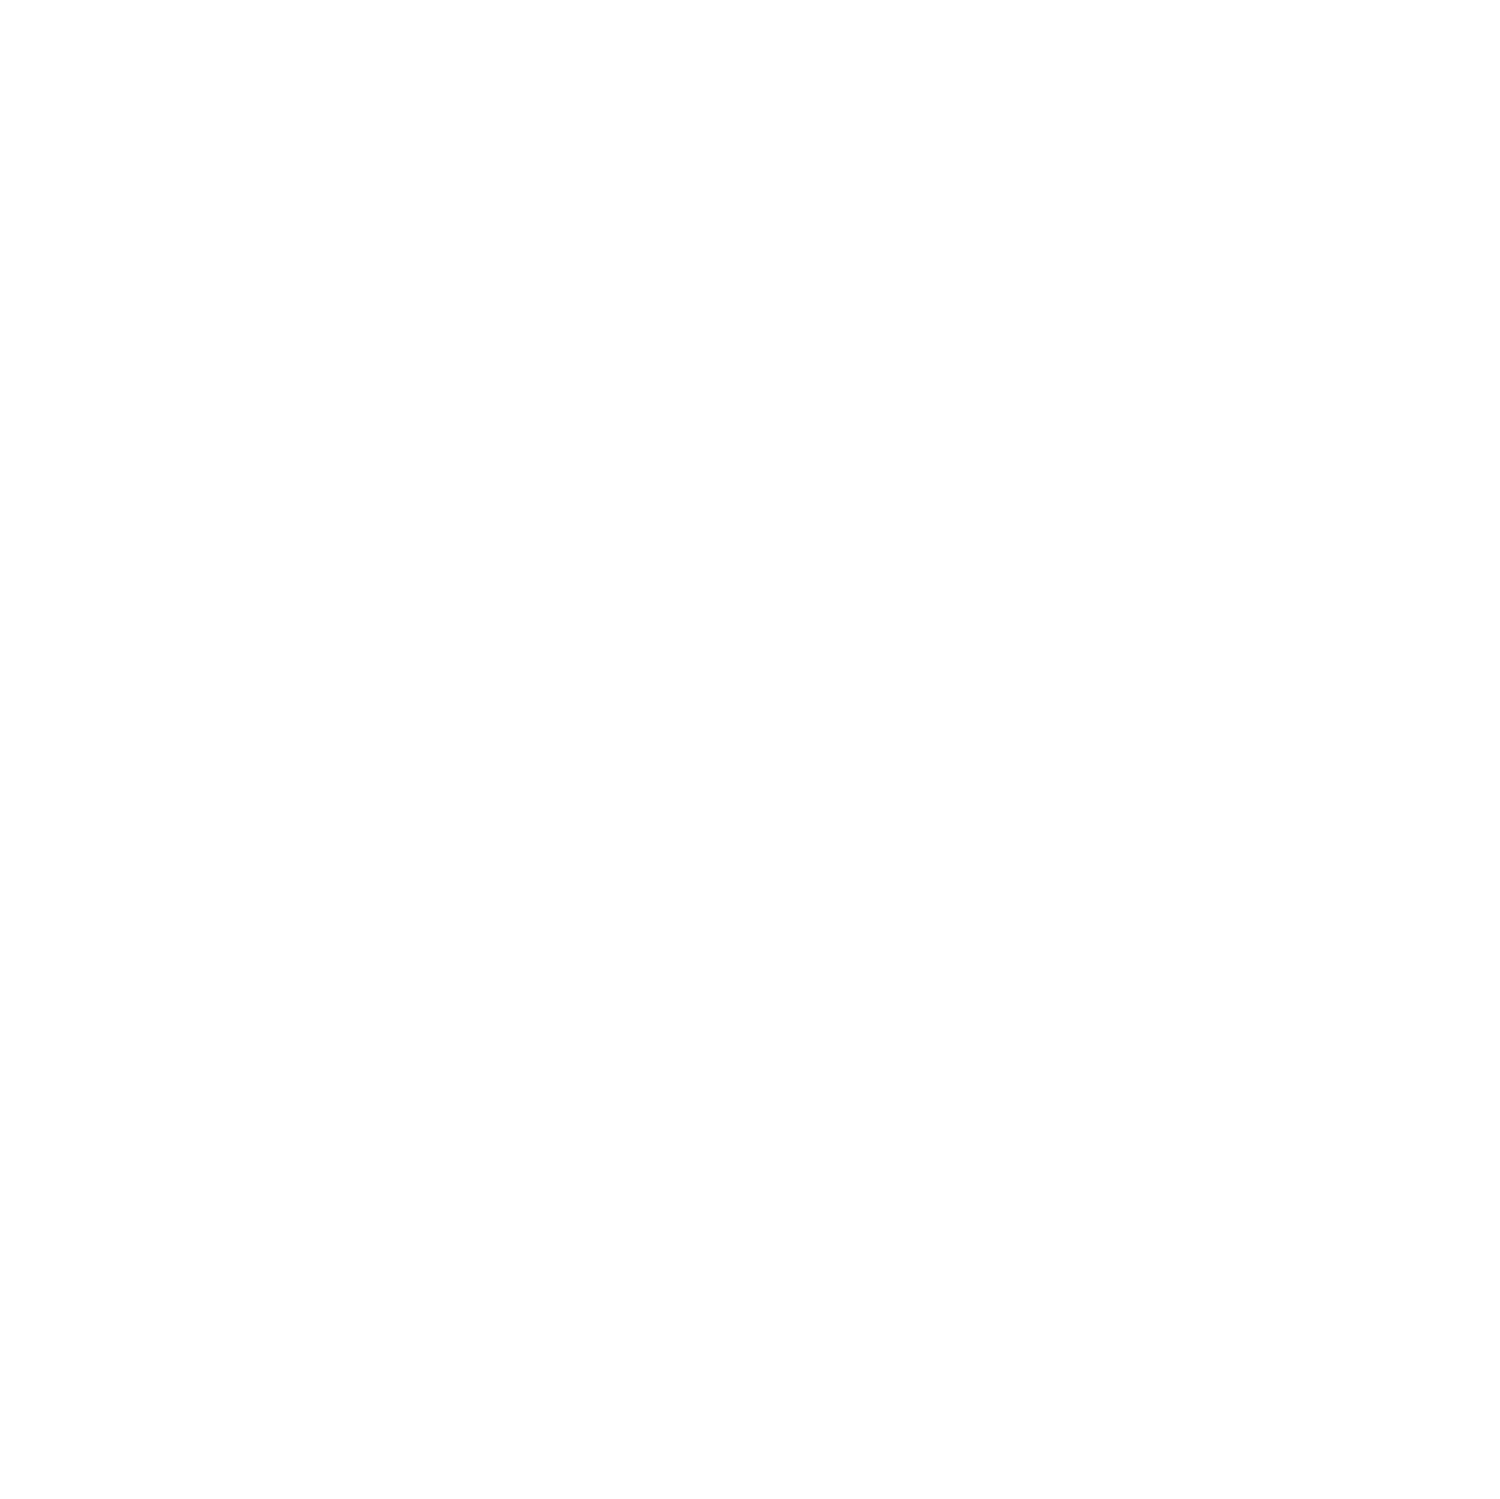 Amplified Design